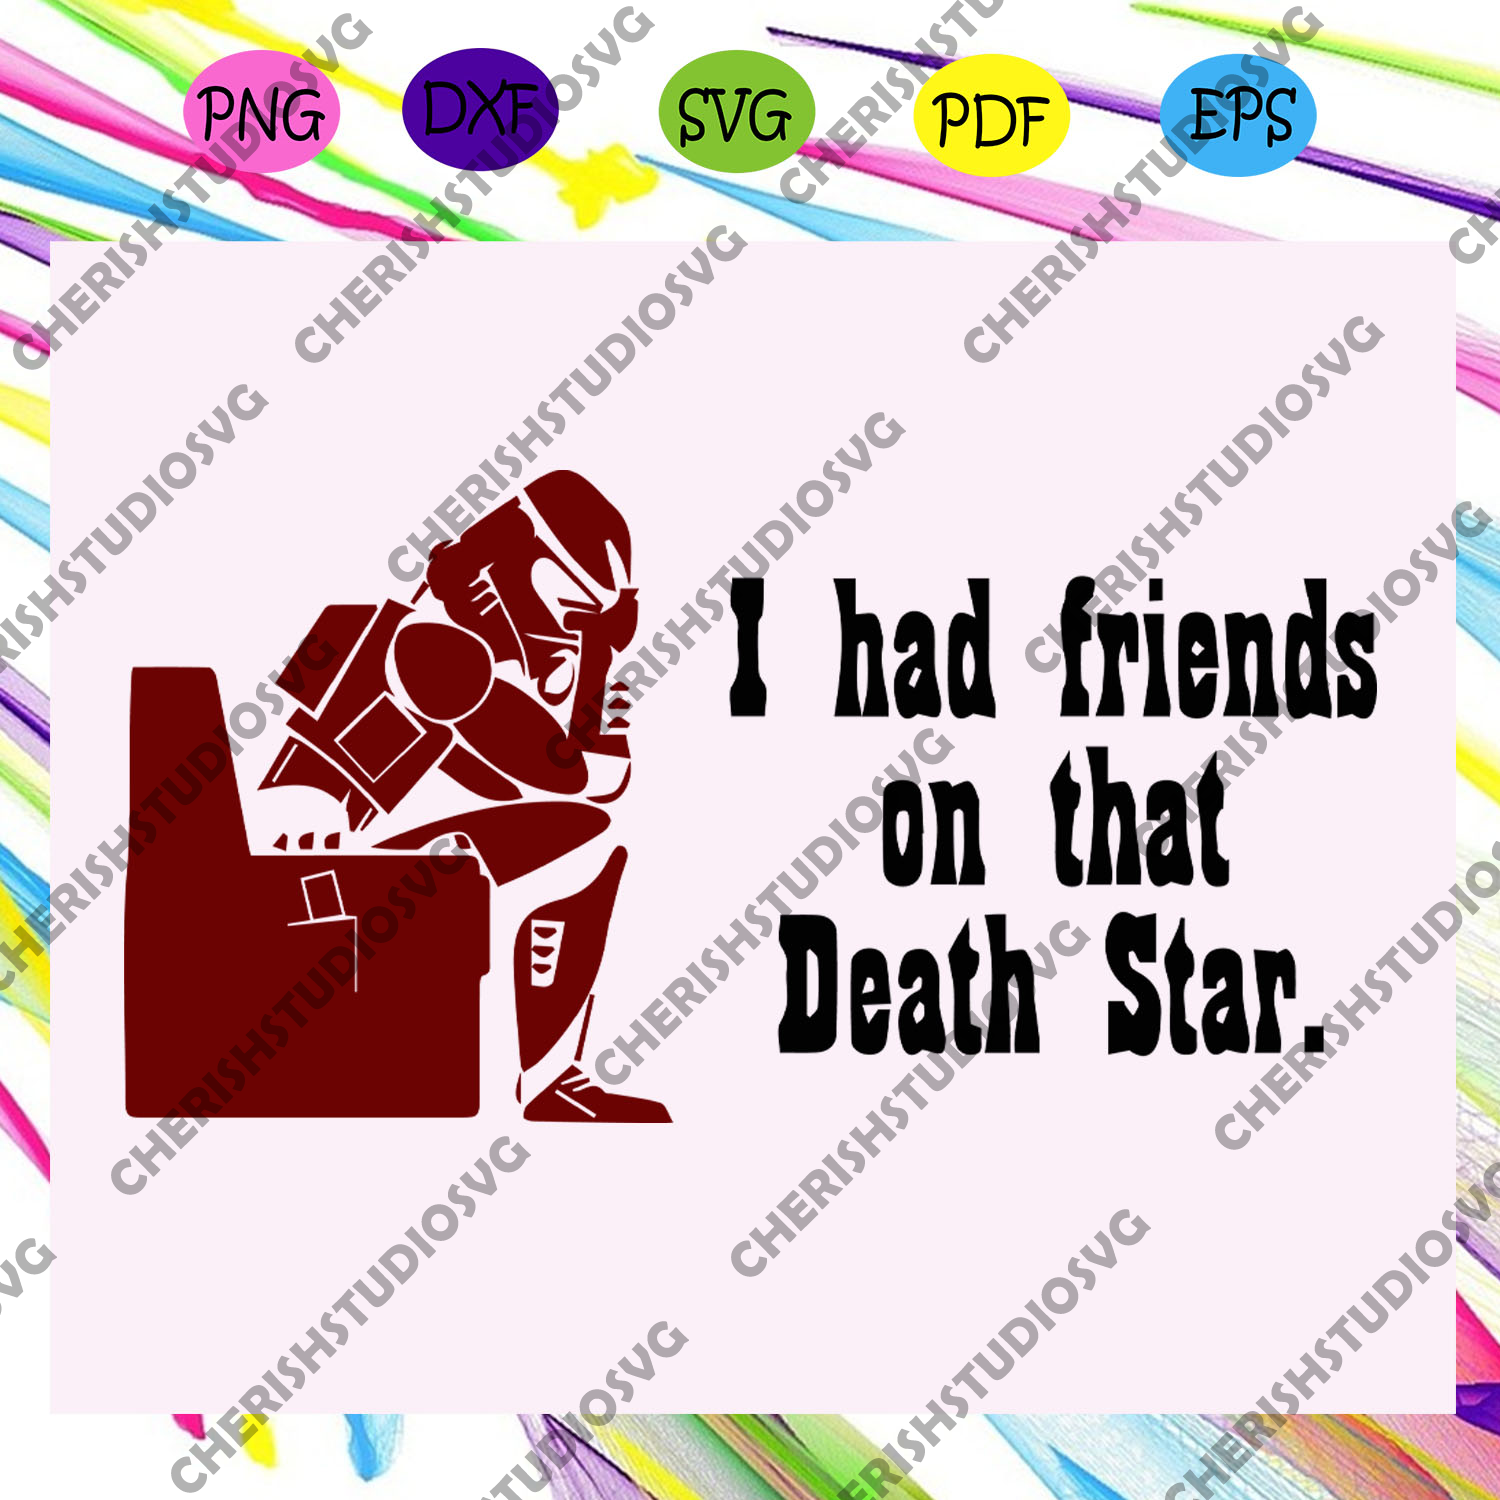 I had friends on that death star, star wars svg, star wars gift, jedi svg, yoda svg, leia svg, mandalorian svg, star wars shirt, star wars clipart, svg cut files, silhouette svg, cricut svg files, decal and vinyl